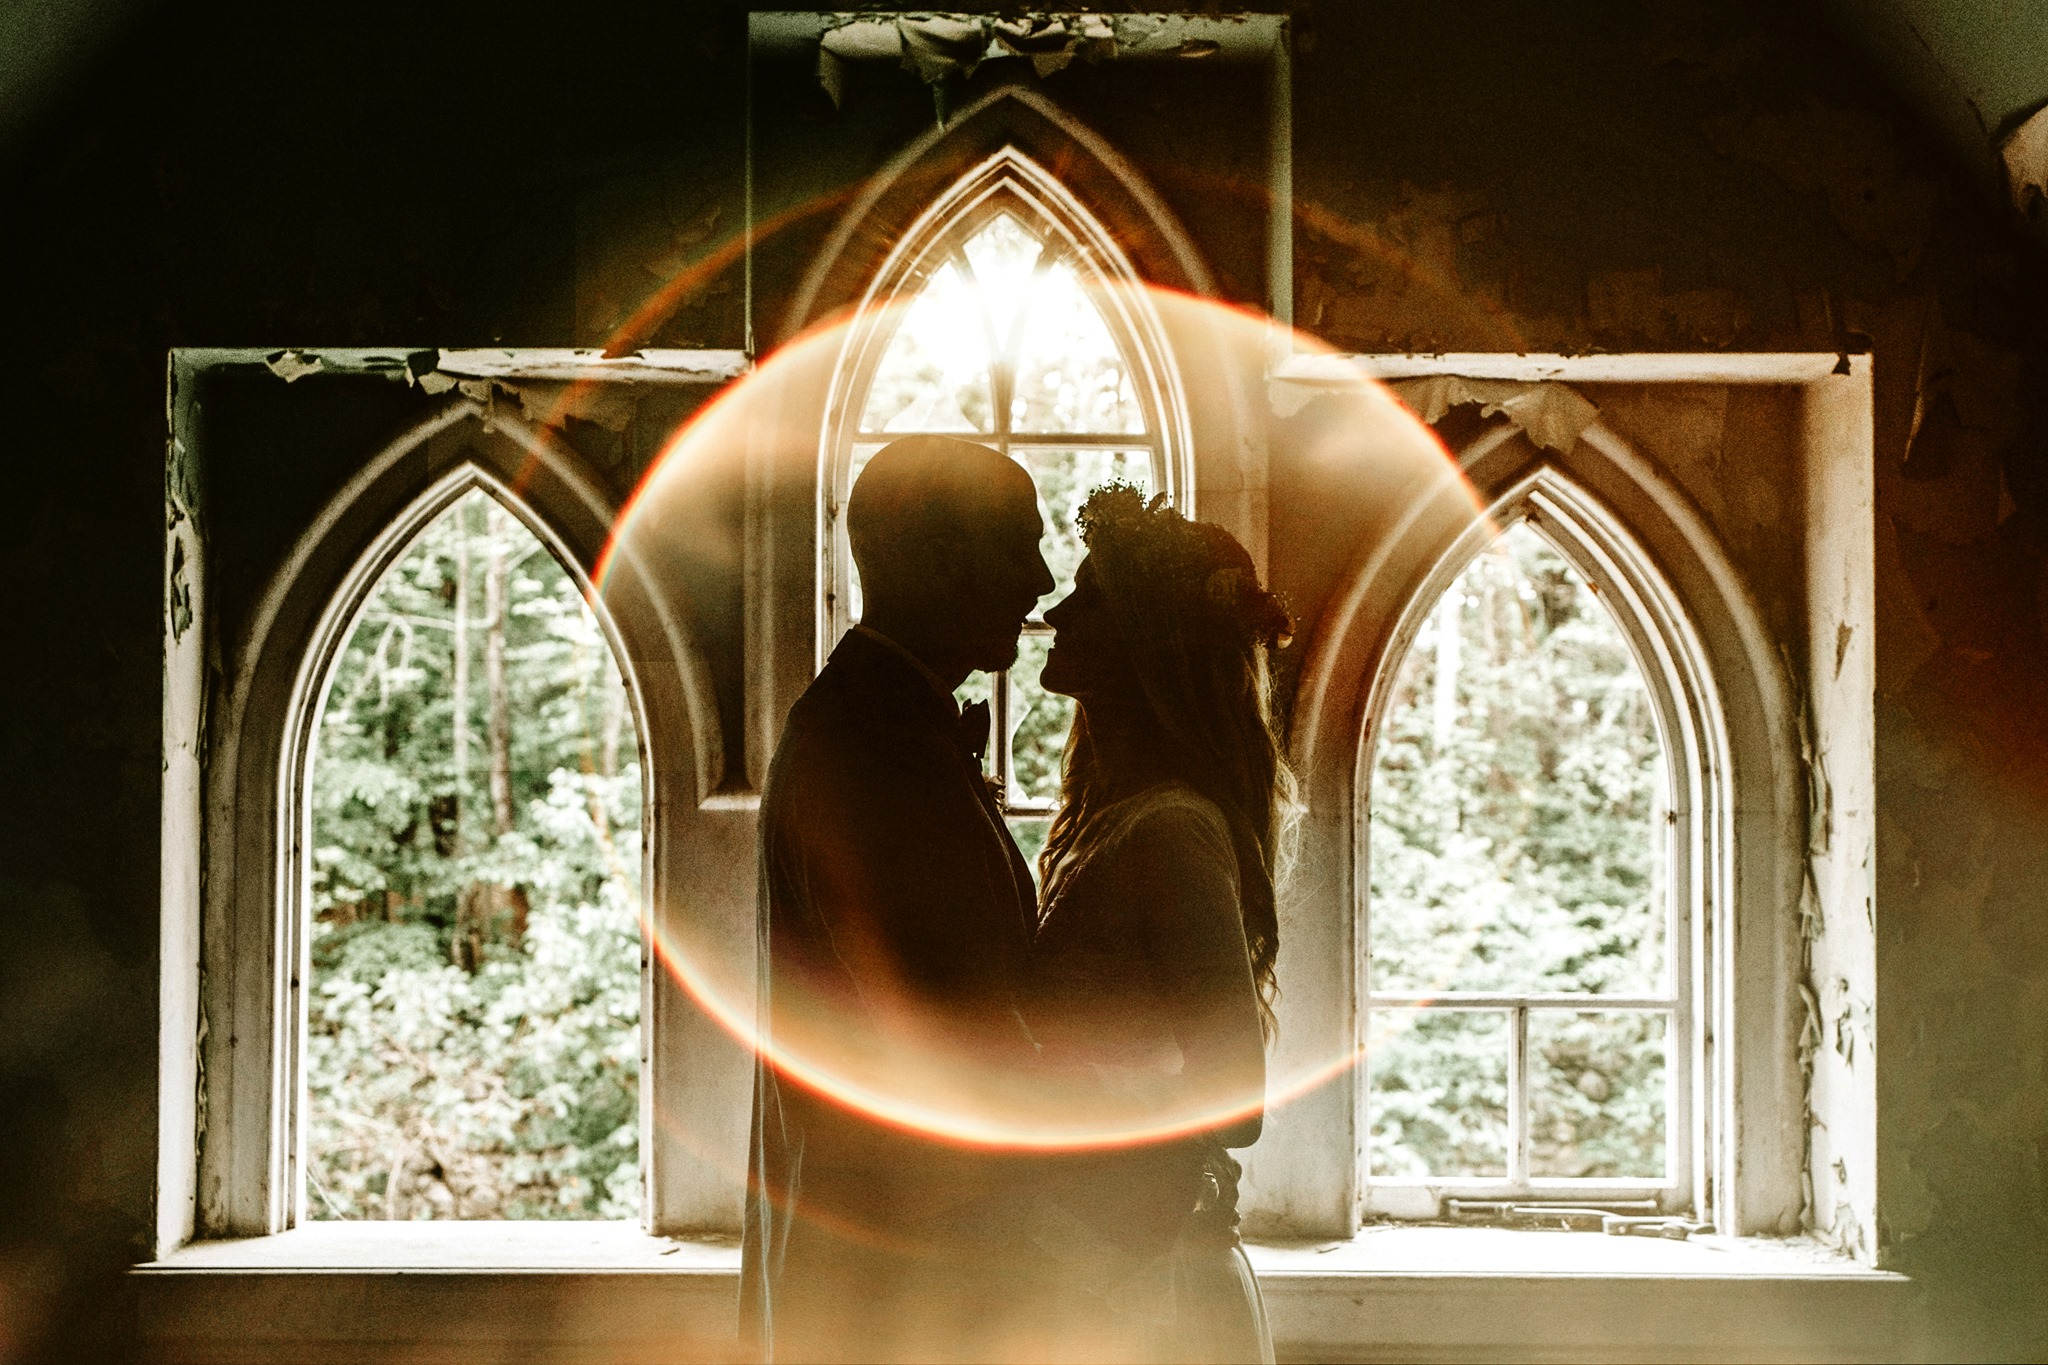 A wedding couple is holding each other and in the background are windows of the Dundas castle.